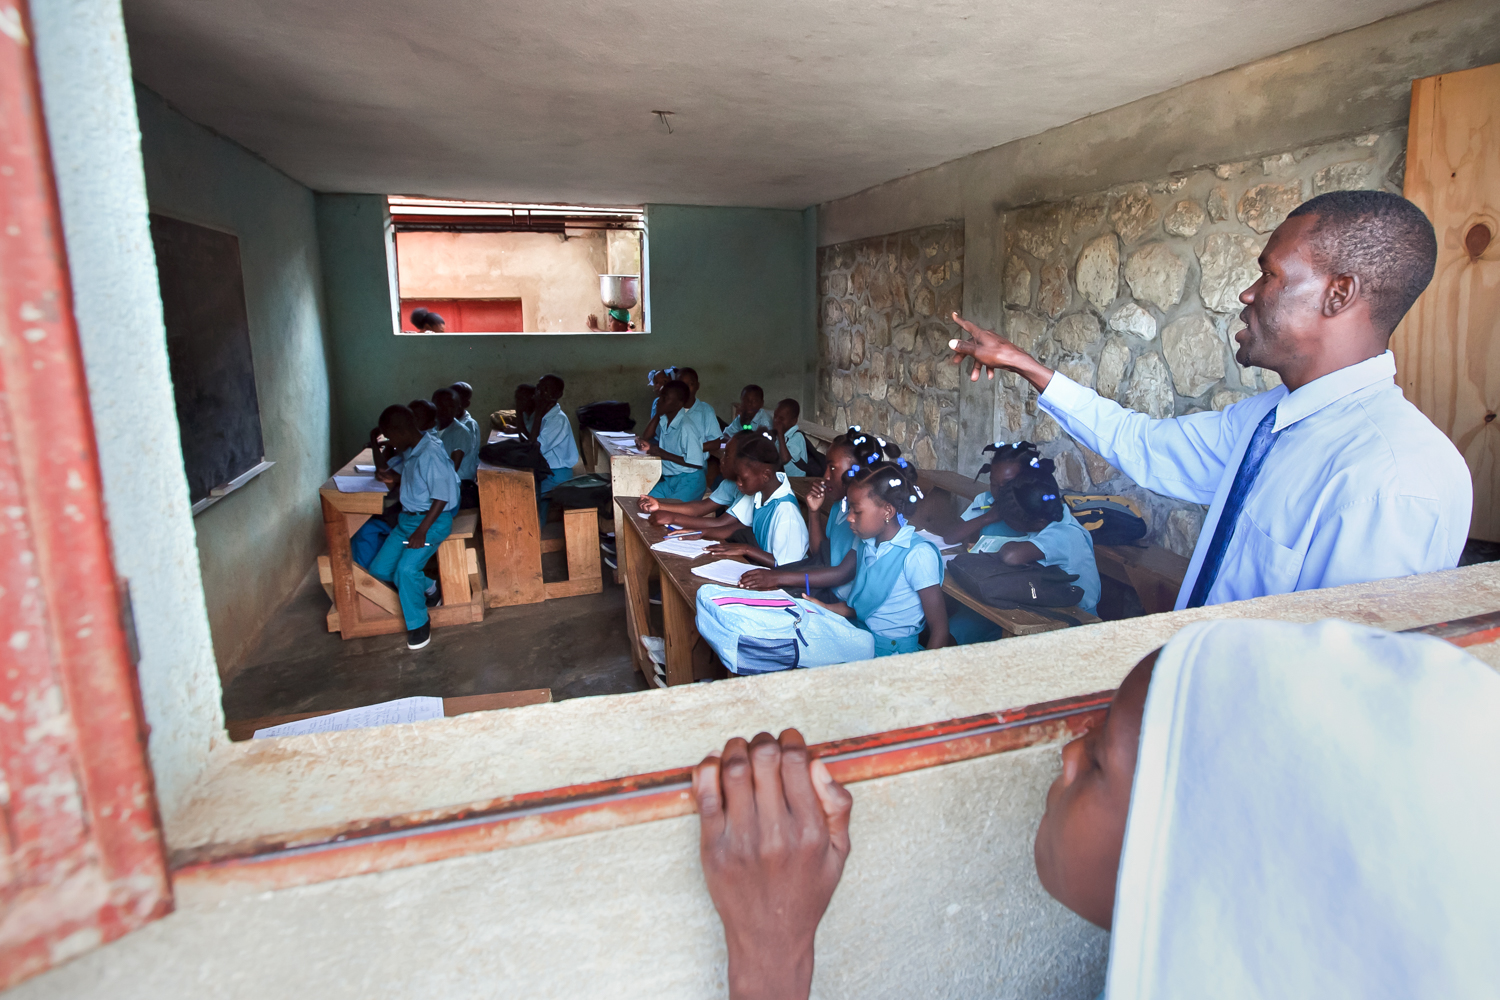 The opportunity for free education at Gramothe's school draws children from miles away. Some walk four hours a day to attend in return for the prospect of a brighter future.